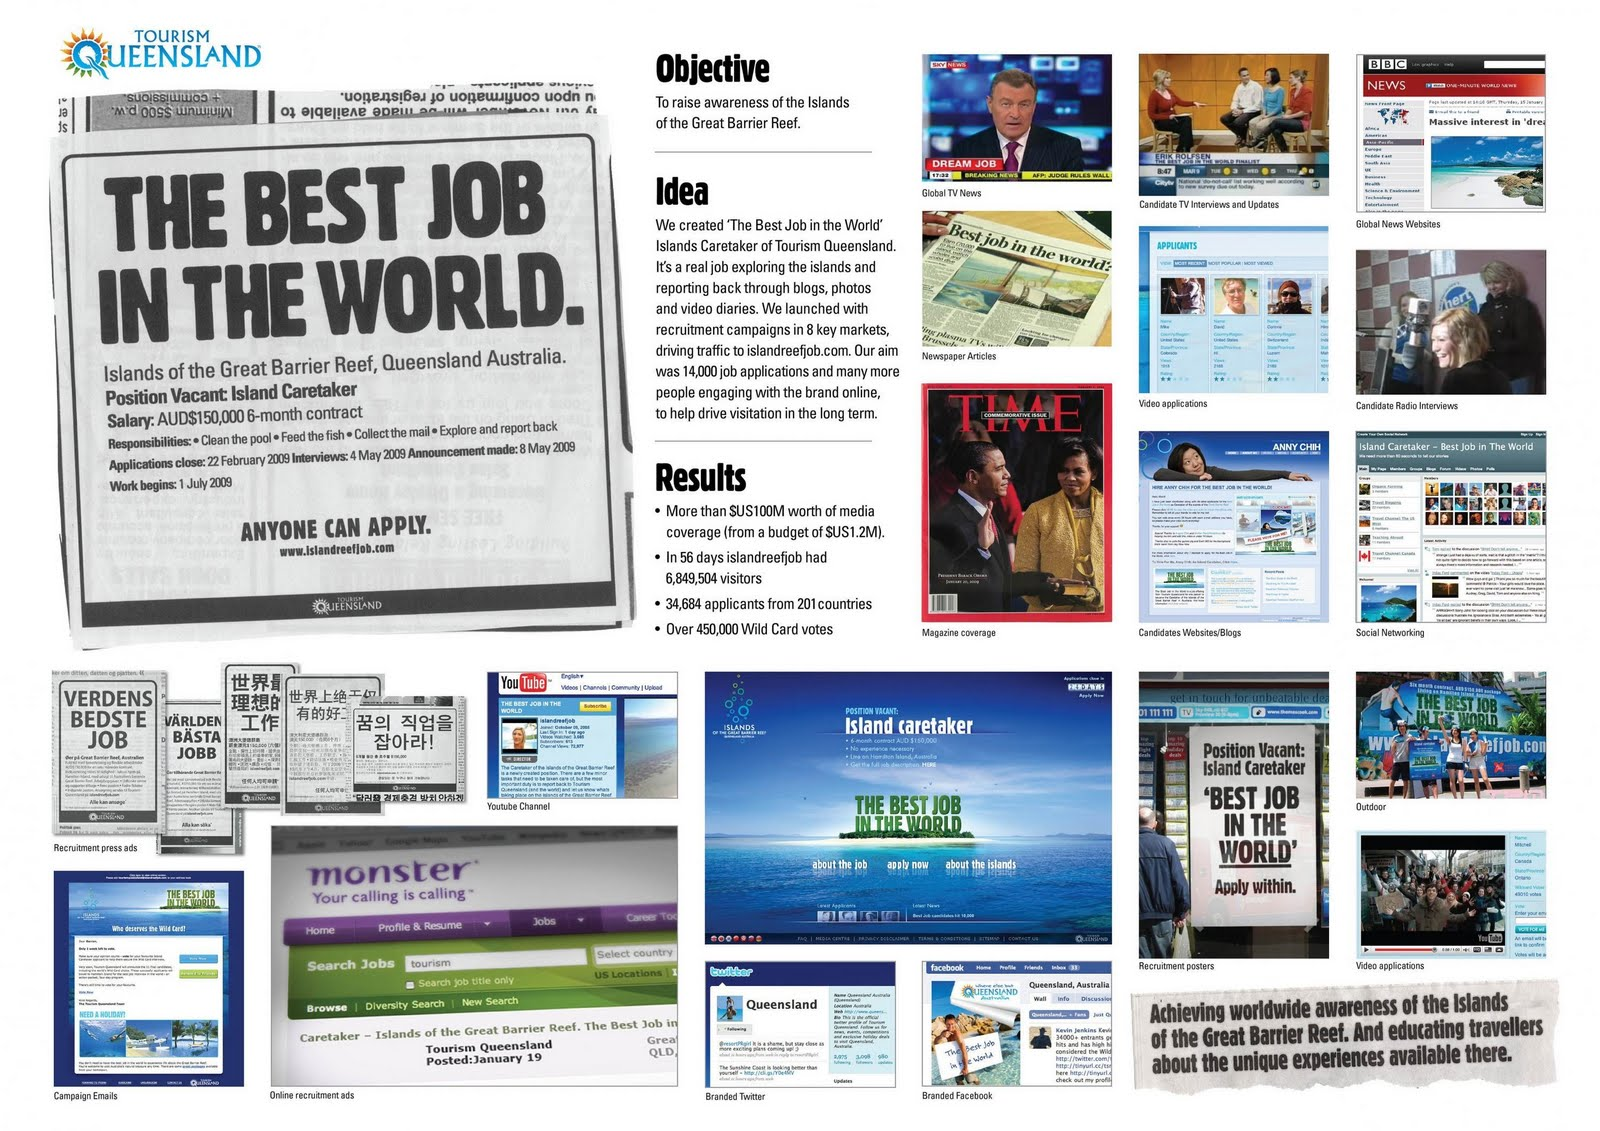 spd4290 viral marketing 2010 shirley chan the best job in the world or a clever viral campaign